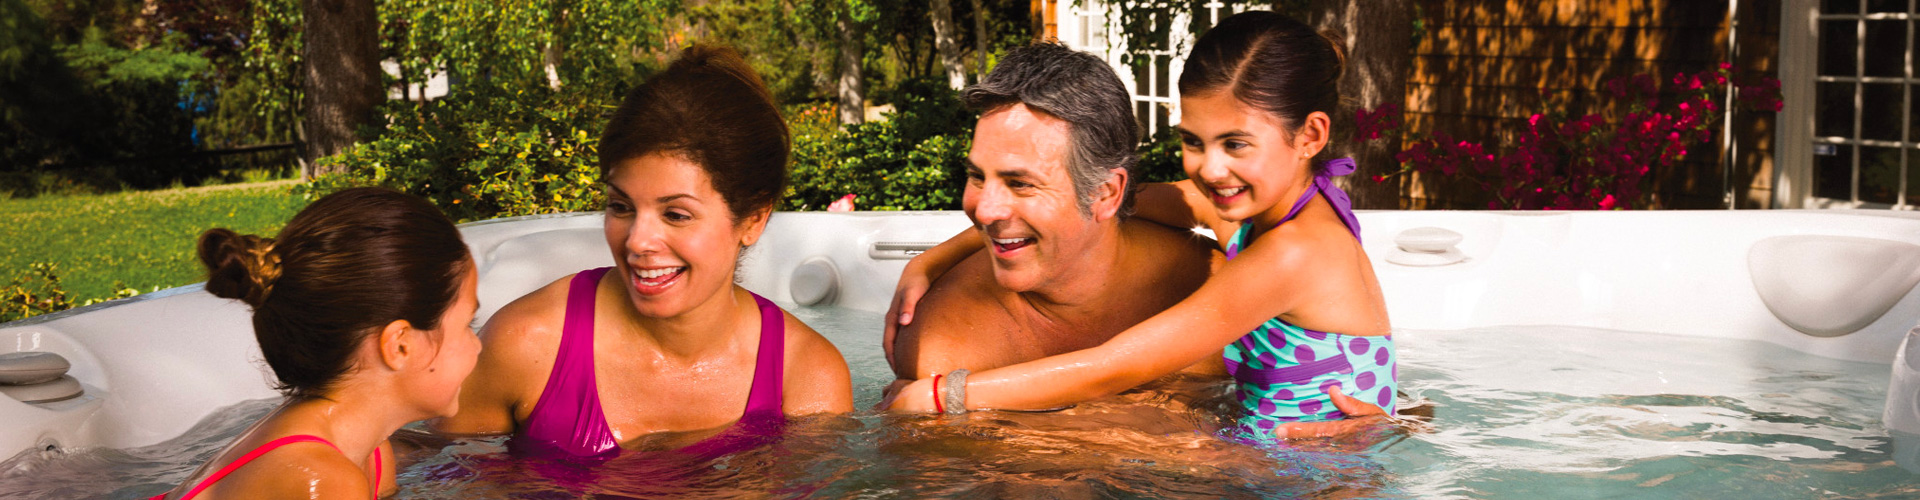 Staycation With an Exciting Portable Spa at Home,  Hot Tubs Brandon